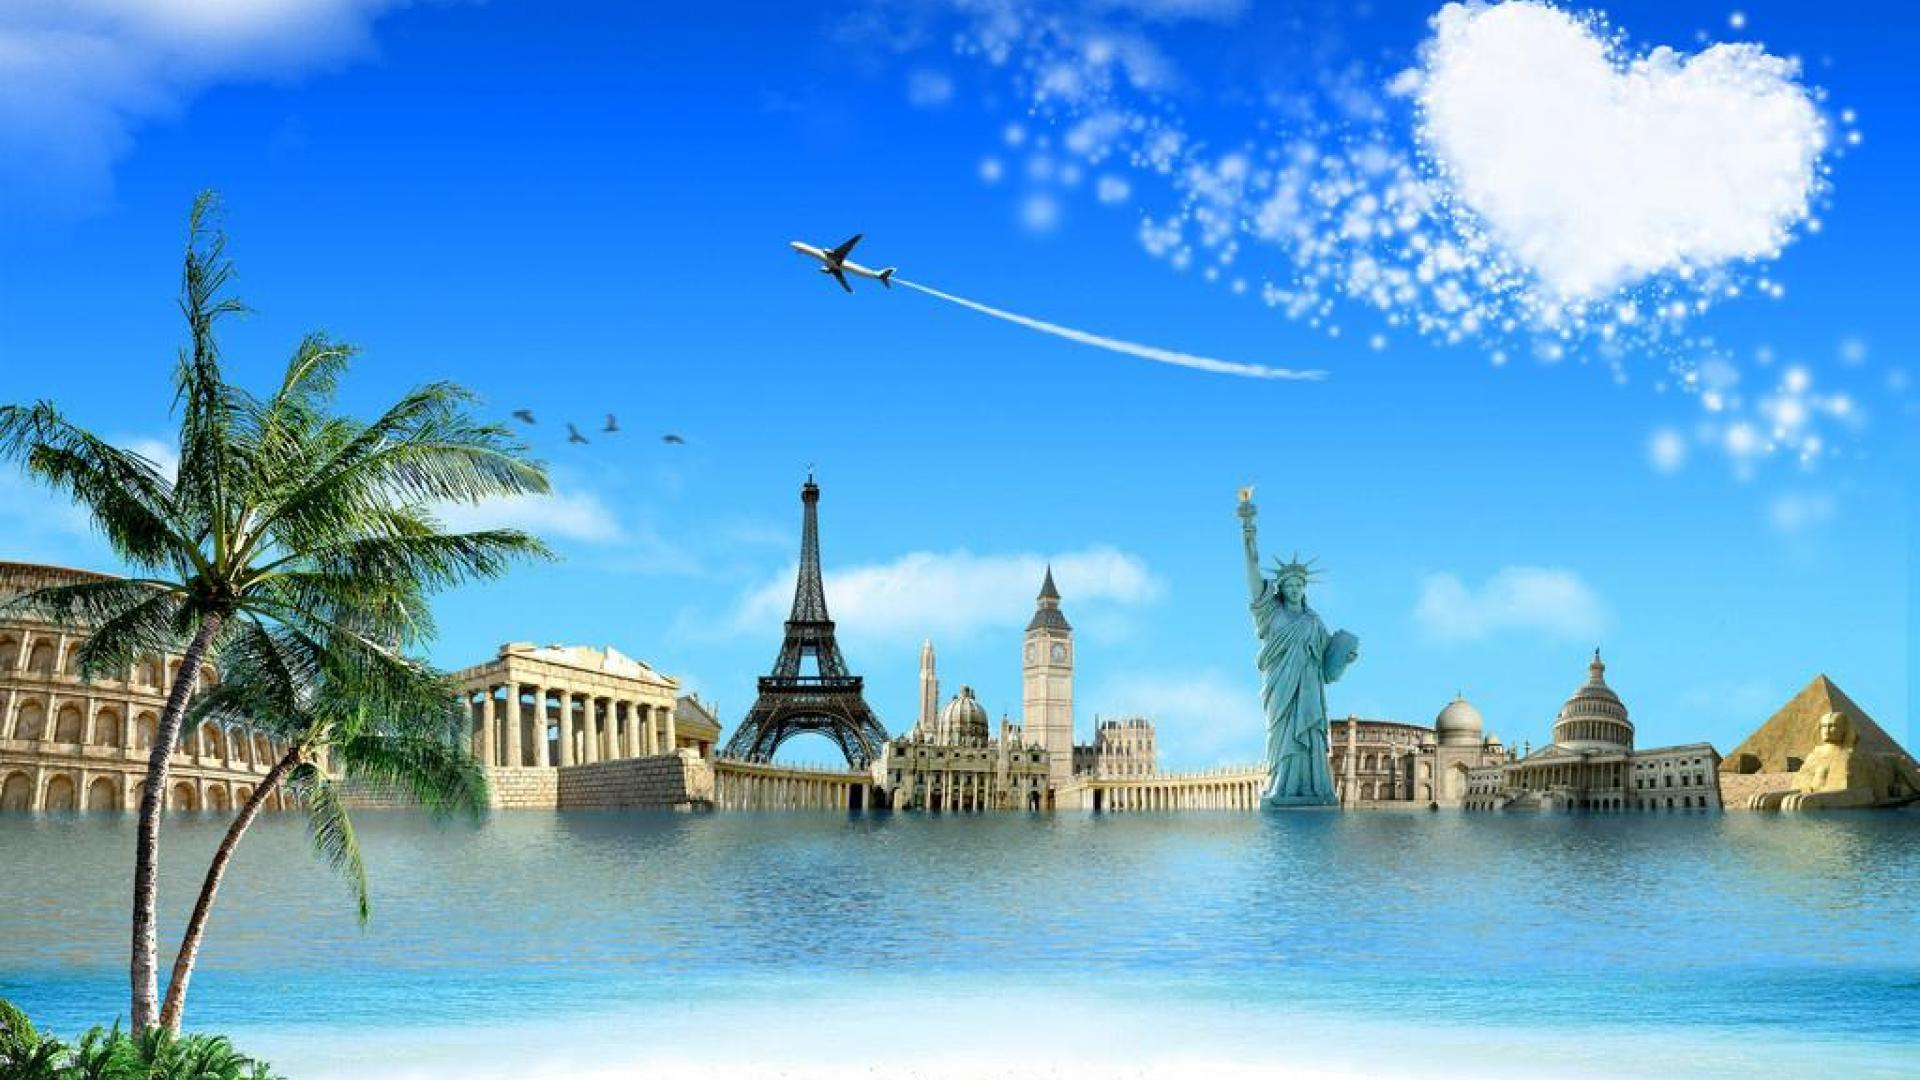 Travel Images Free Download Page  Wallpaper Wiki